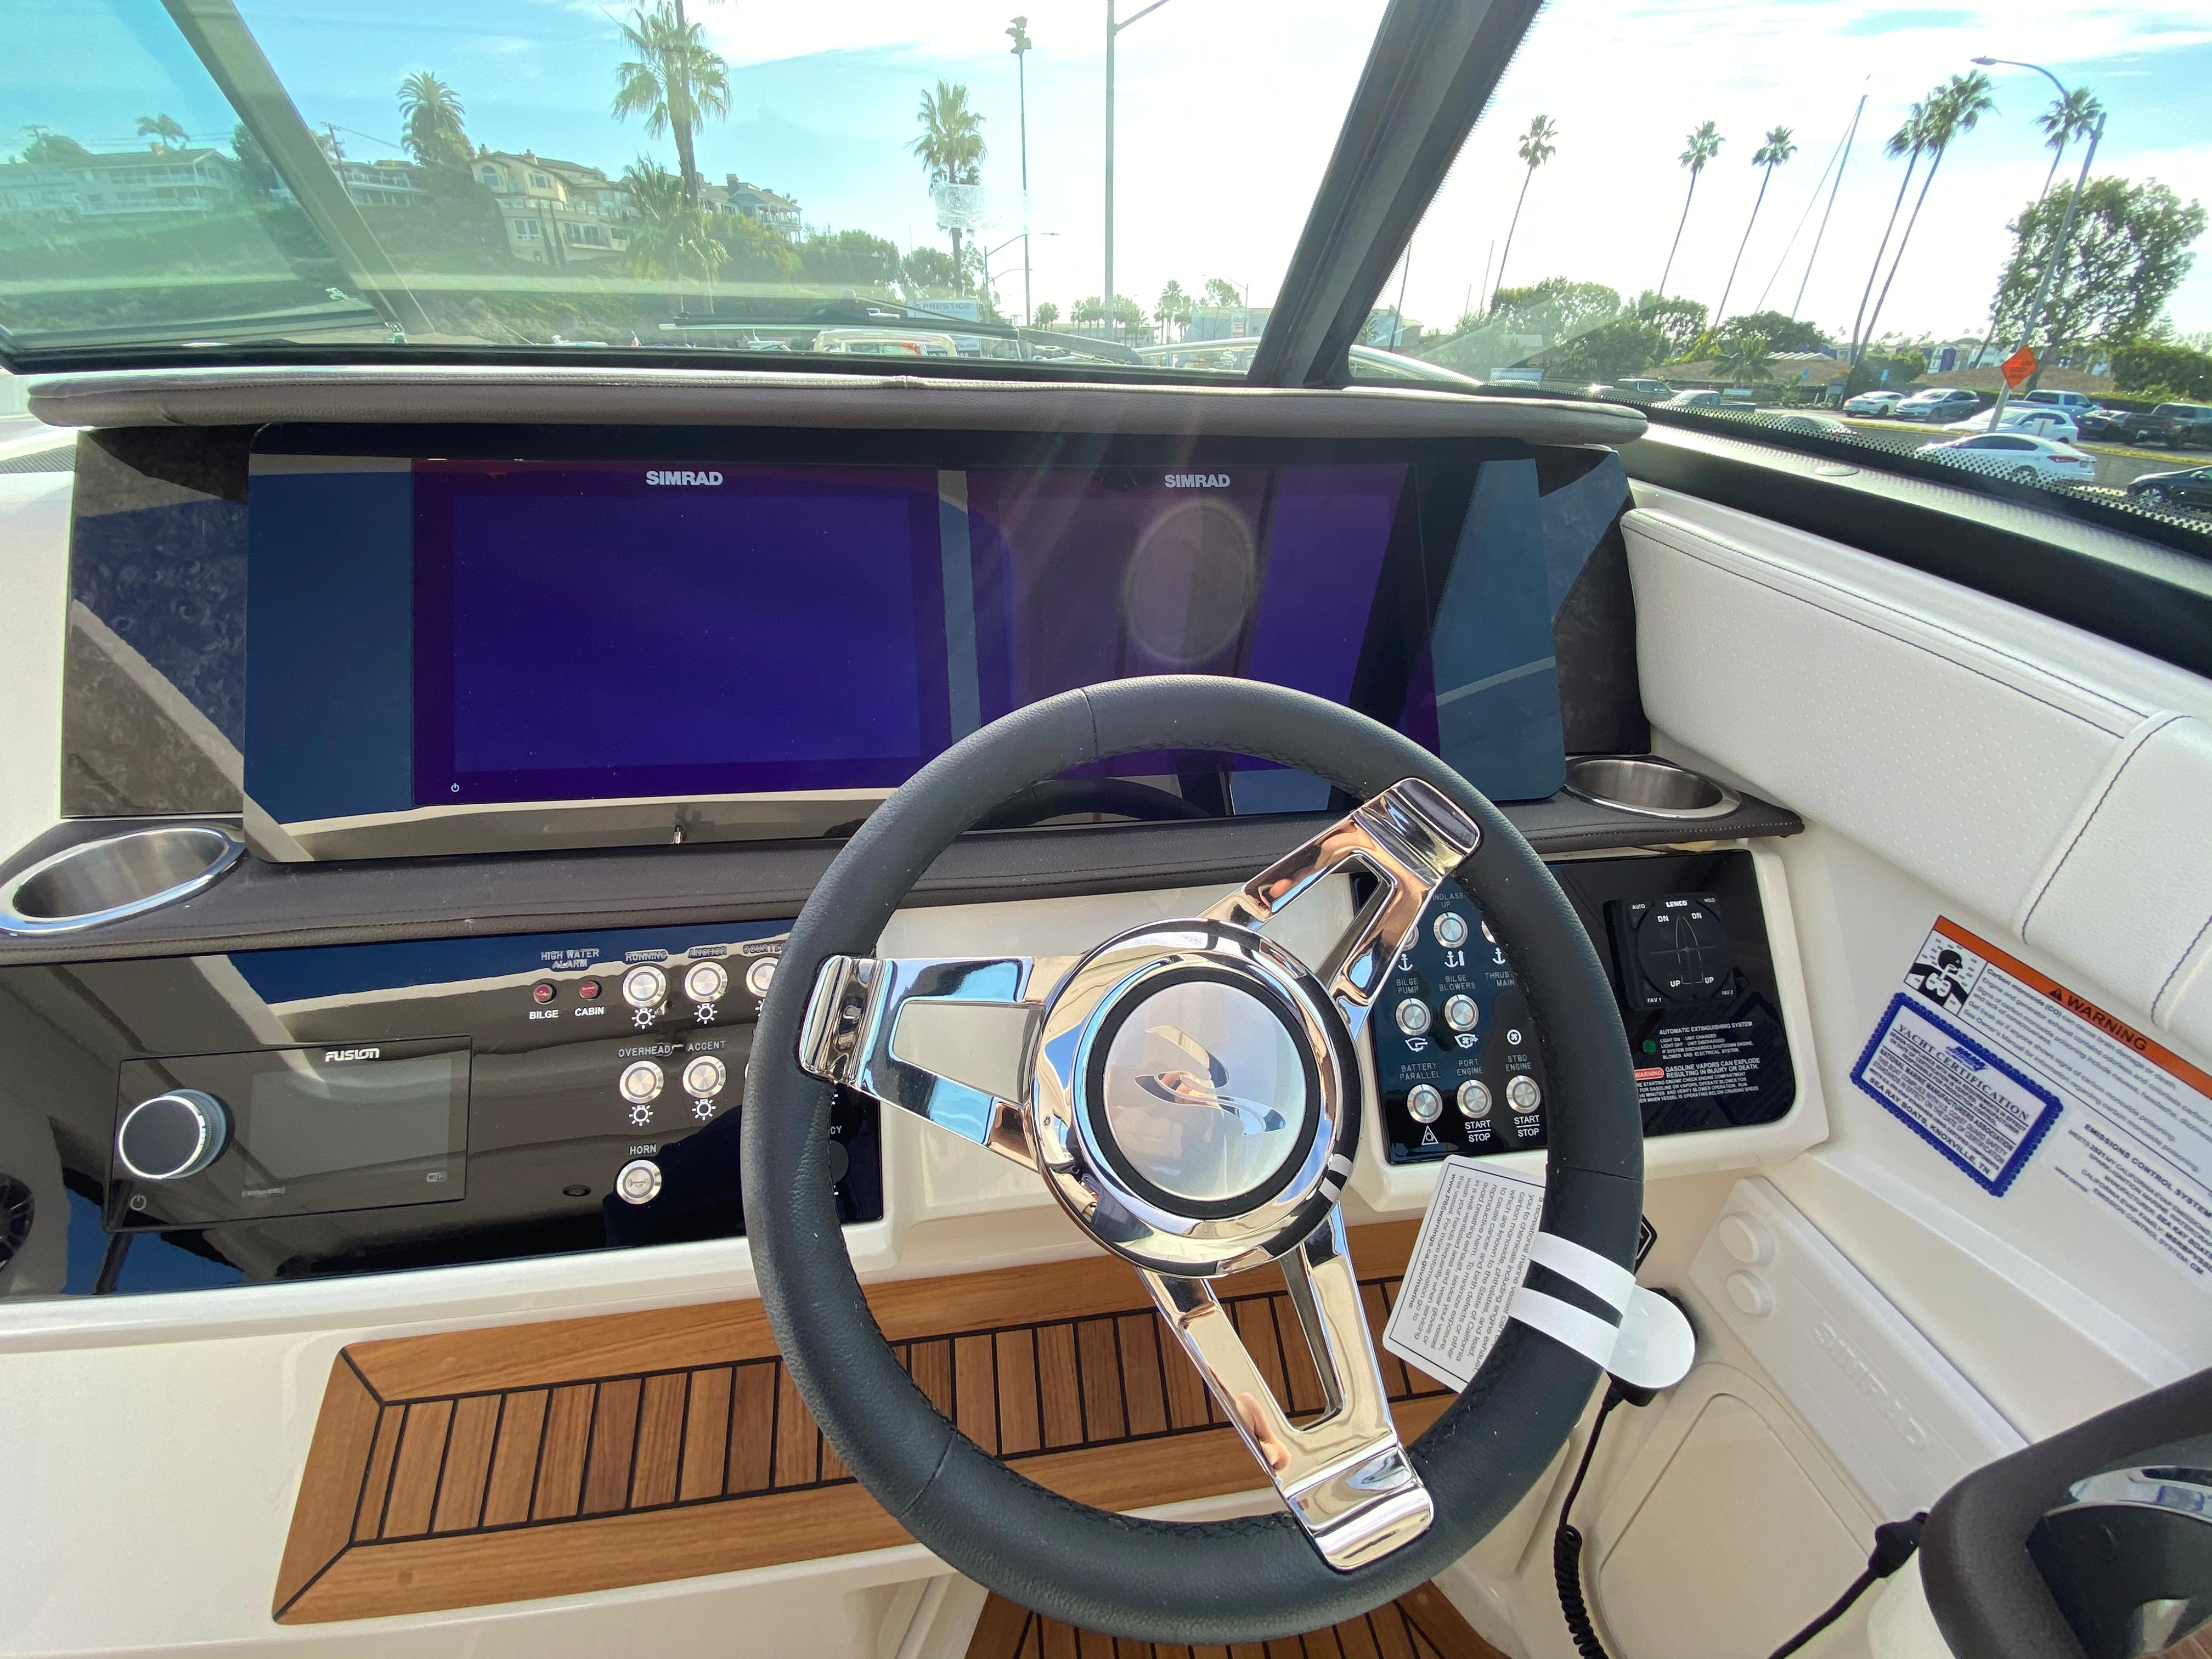 2021 Sea Ray 320 Sundancer Outboard #S1531J inventory image at Sun Country Coastal in Newport Beach